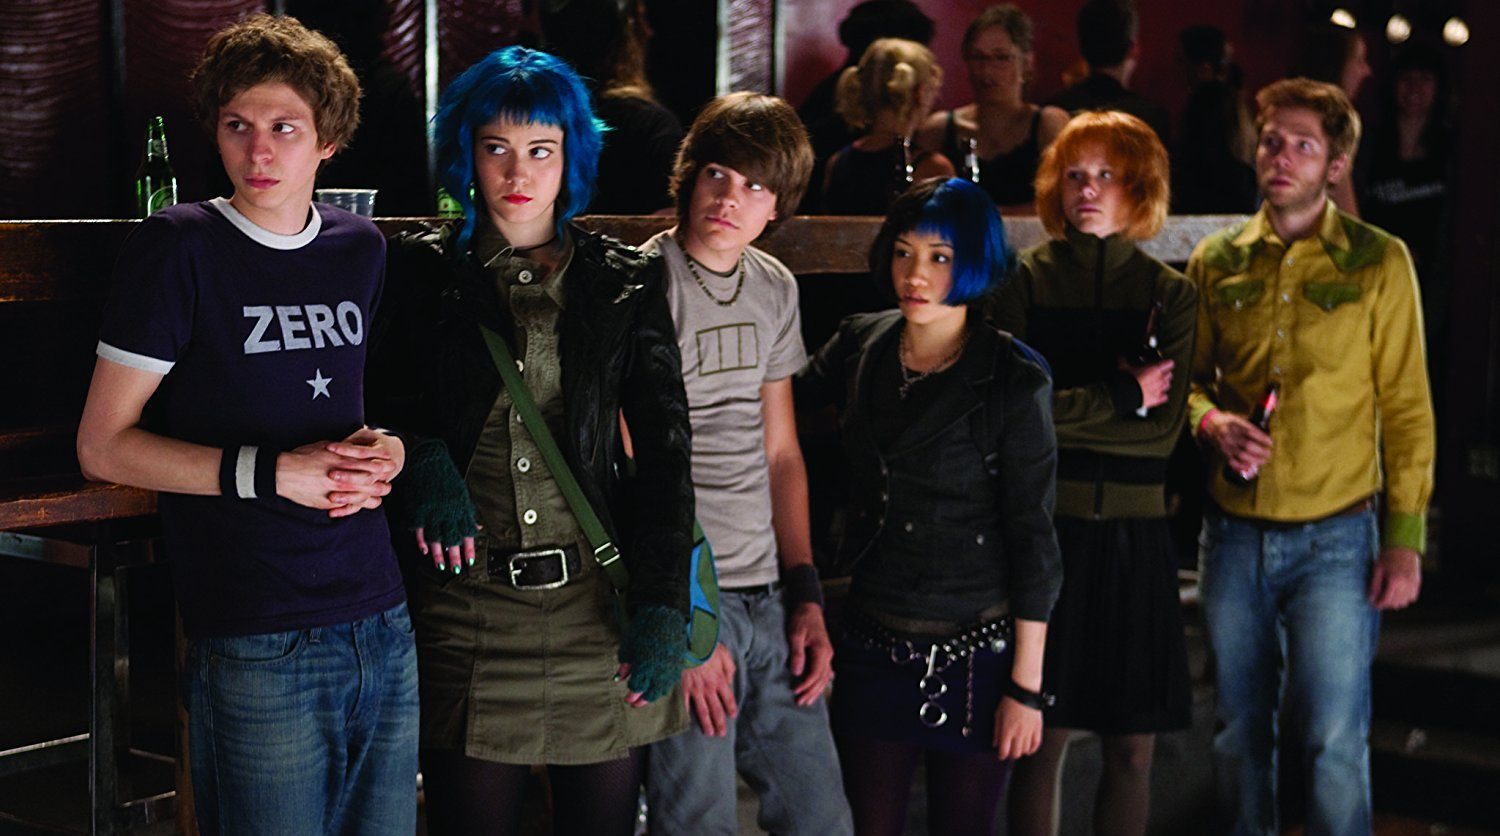 Scott Pilgrim vs. the World (2010) | Bright Wall/Dark Room